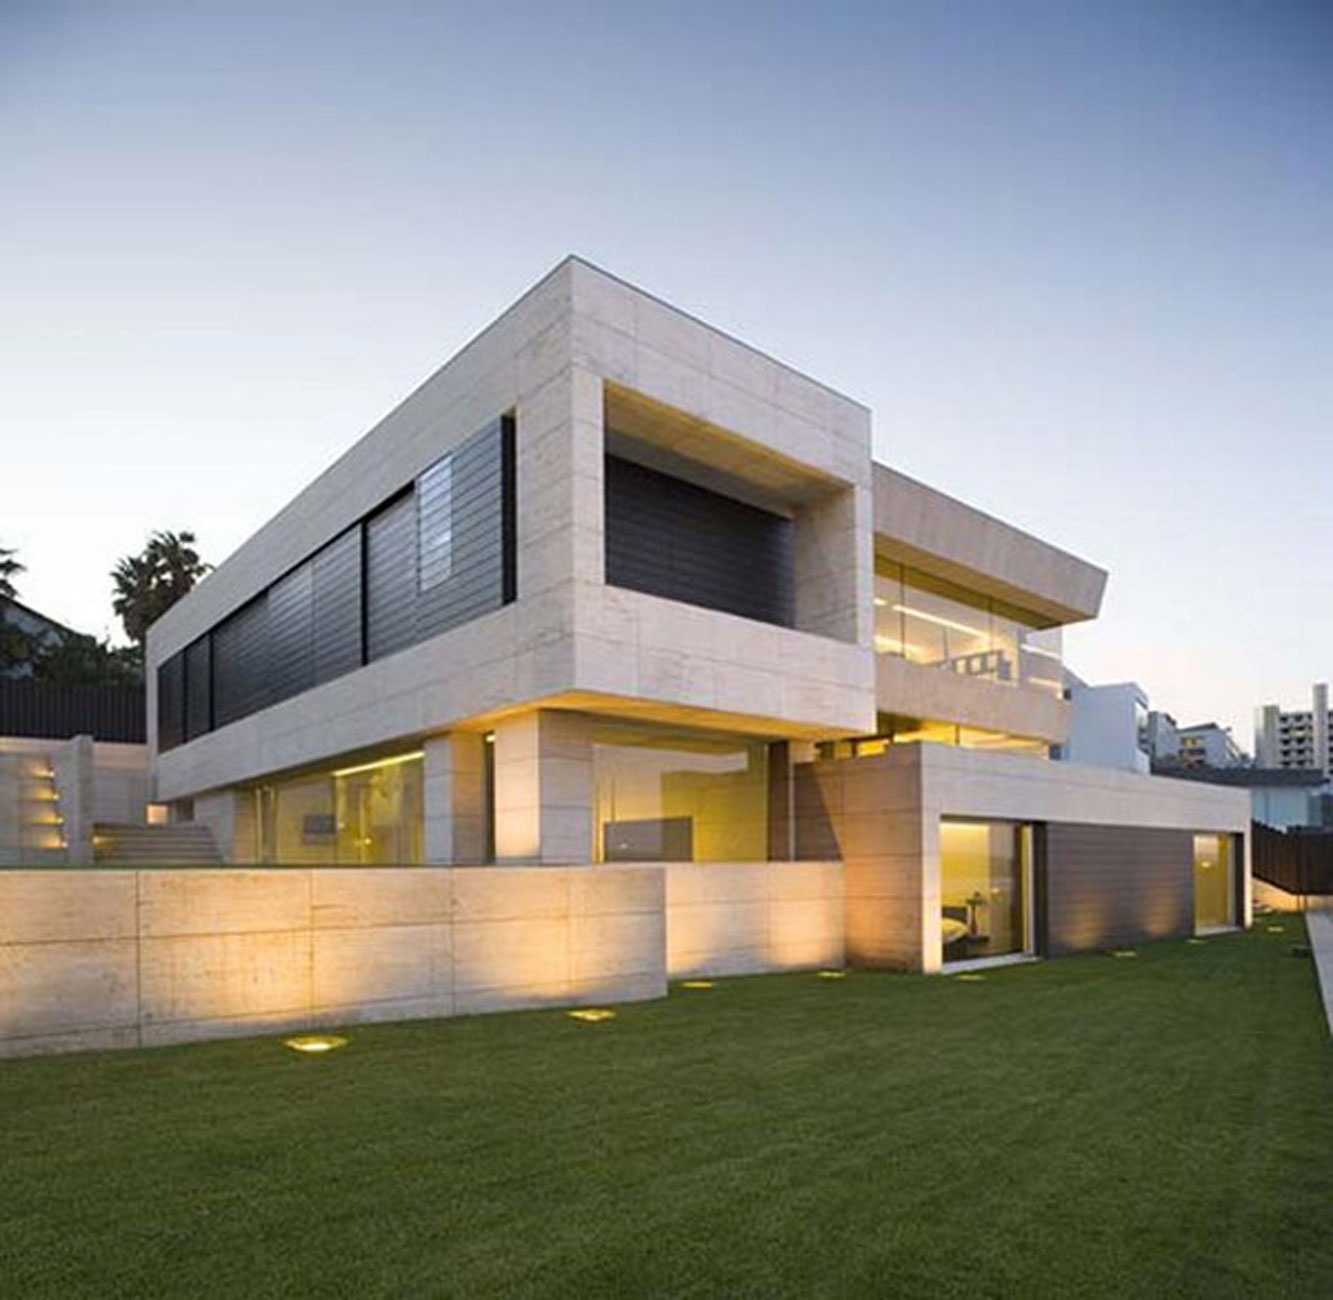 Modern glass house design in cliff side of galicia spain architecture